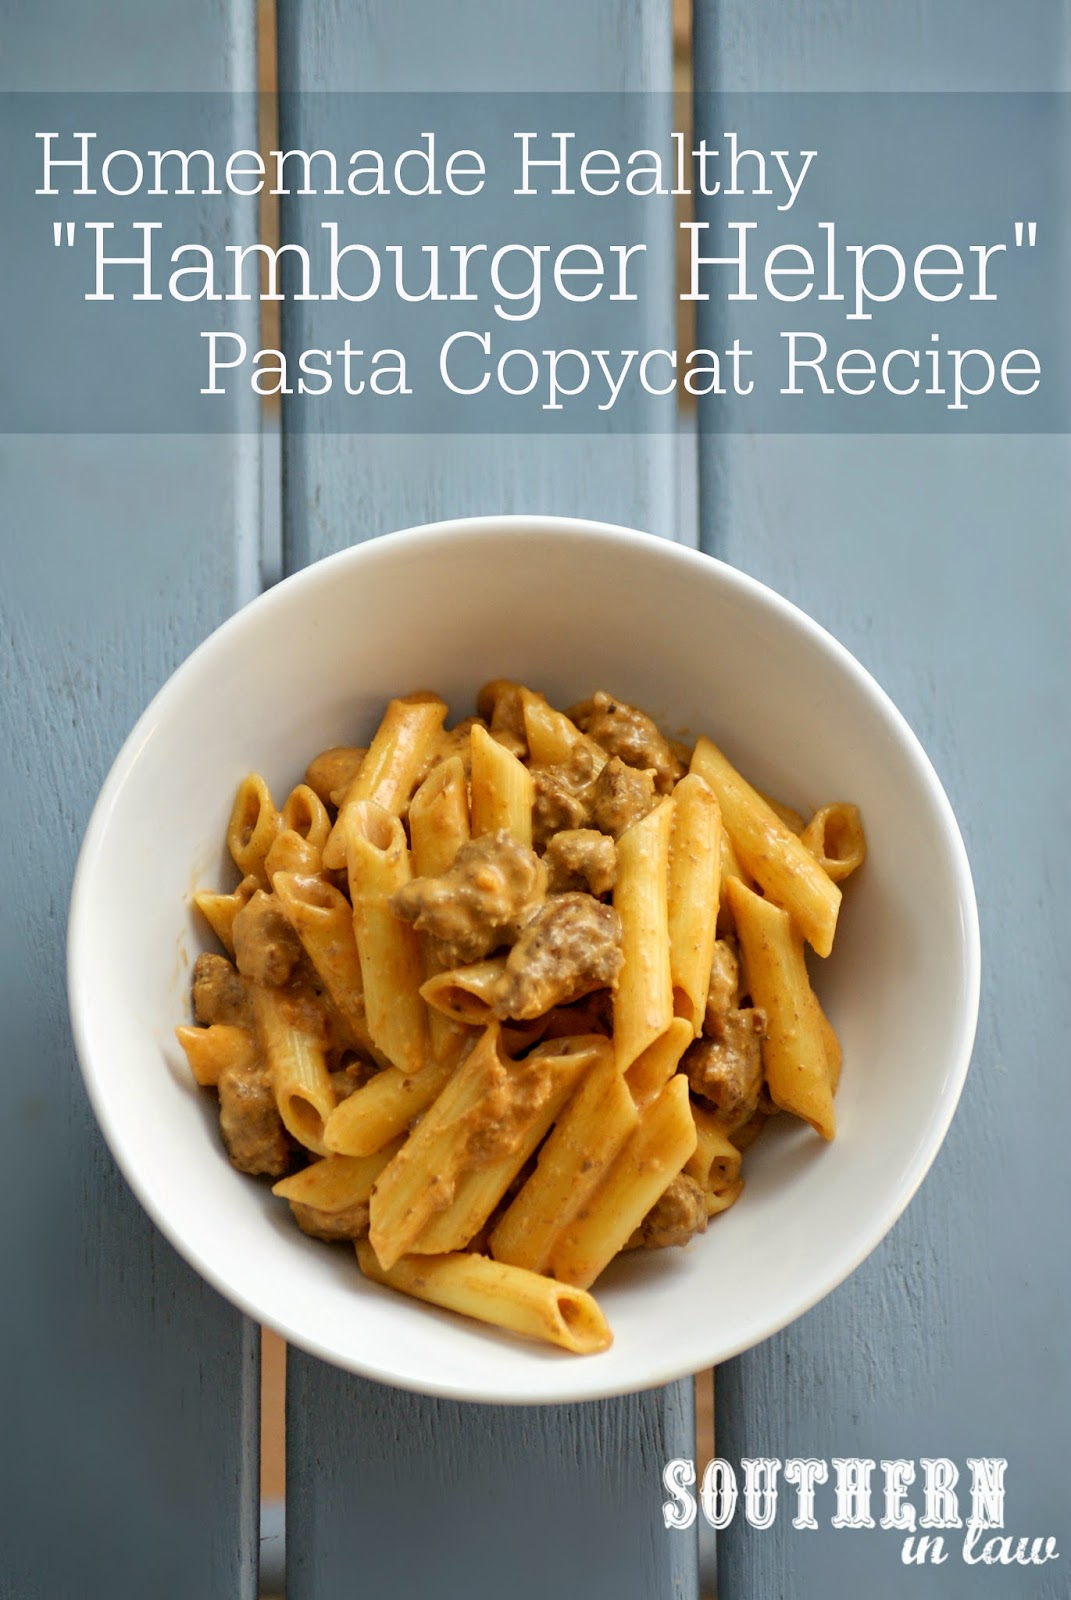 Gluten Free Homemade Hamburger Helper Pasta Copycat Recipe - low fat, gluten free, clean eating friendly, all natural, healthy